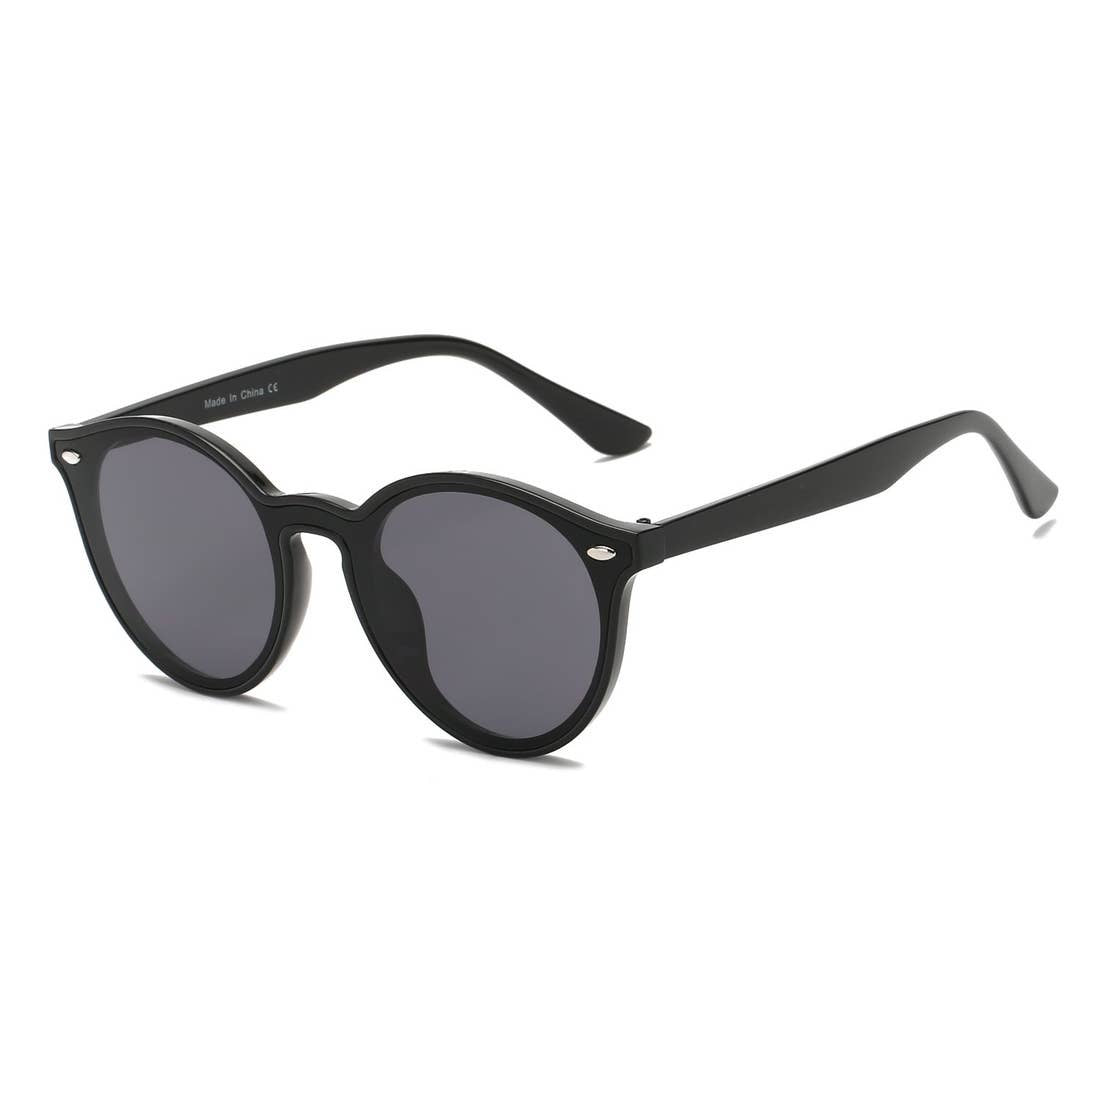 Unisex Fashion Retro Round Sunglasses